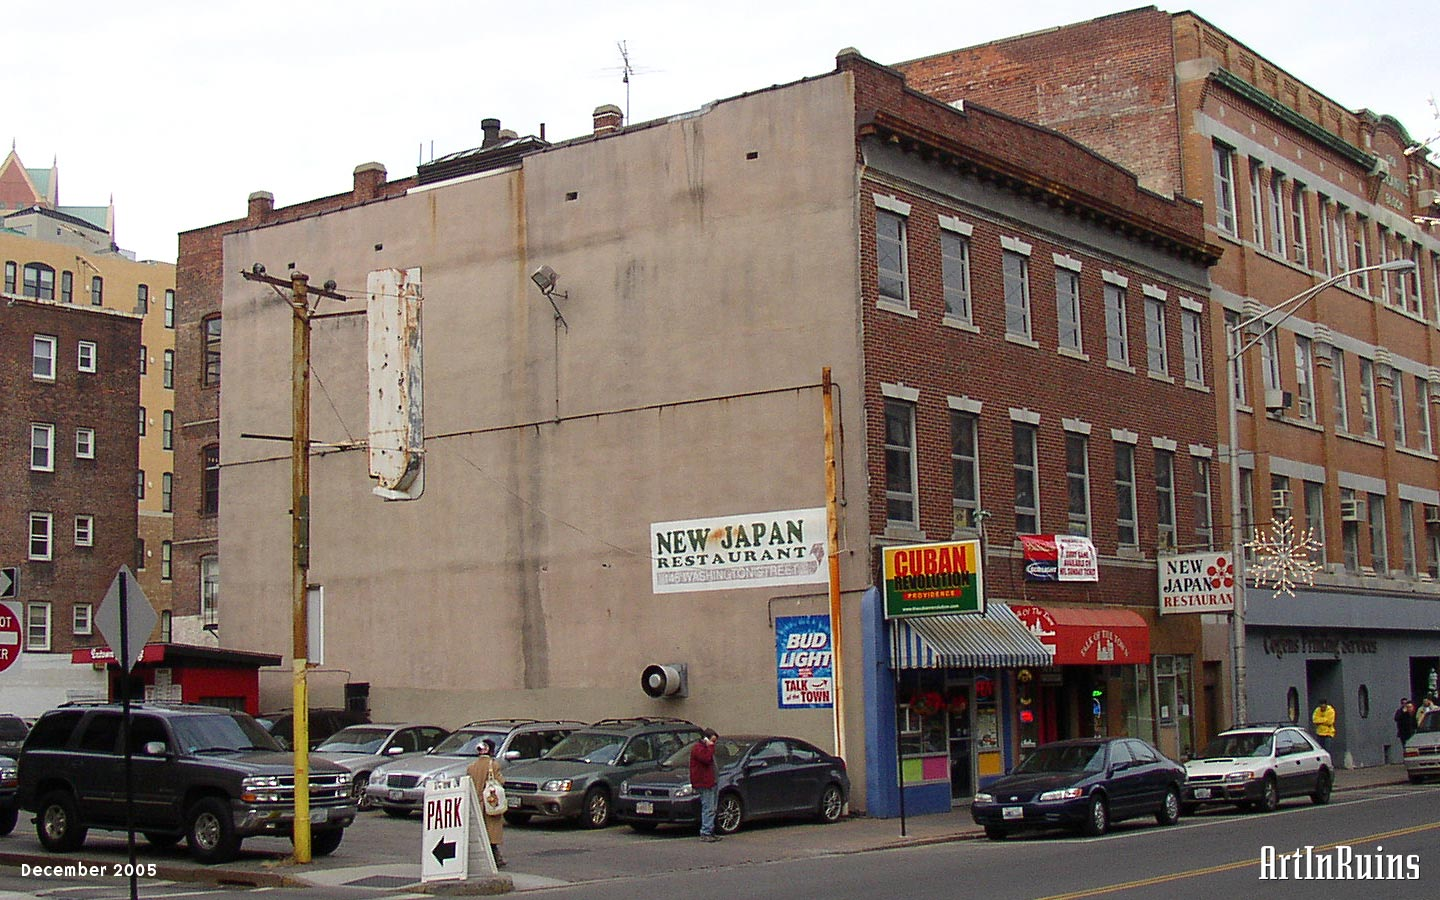 A three-story red-brick fronted commercial building seven windows wide. Windows have stone lintels and sills. The ground floor was occupied by three restaurant businesses with a mix of metal, wood, and brick facades.